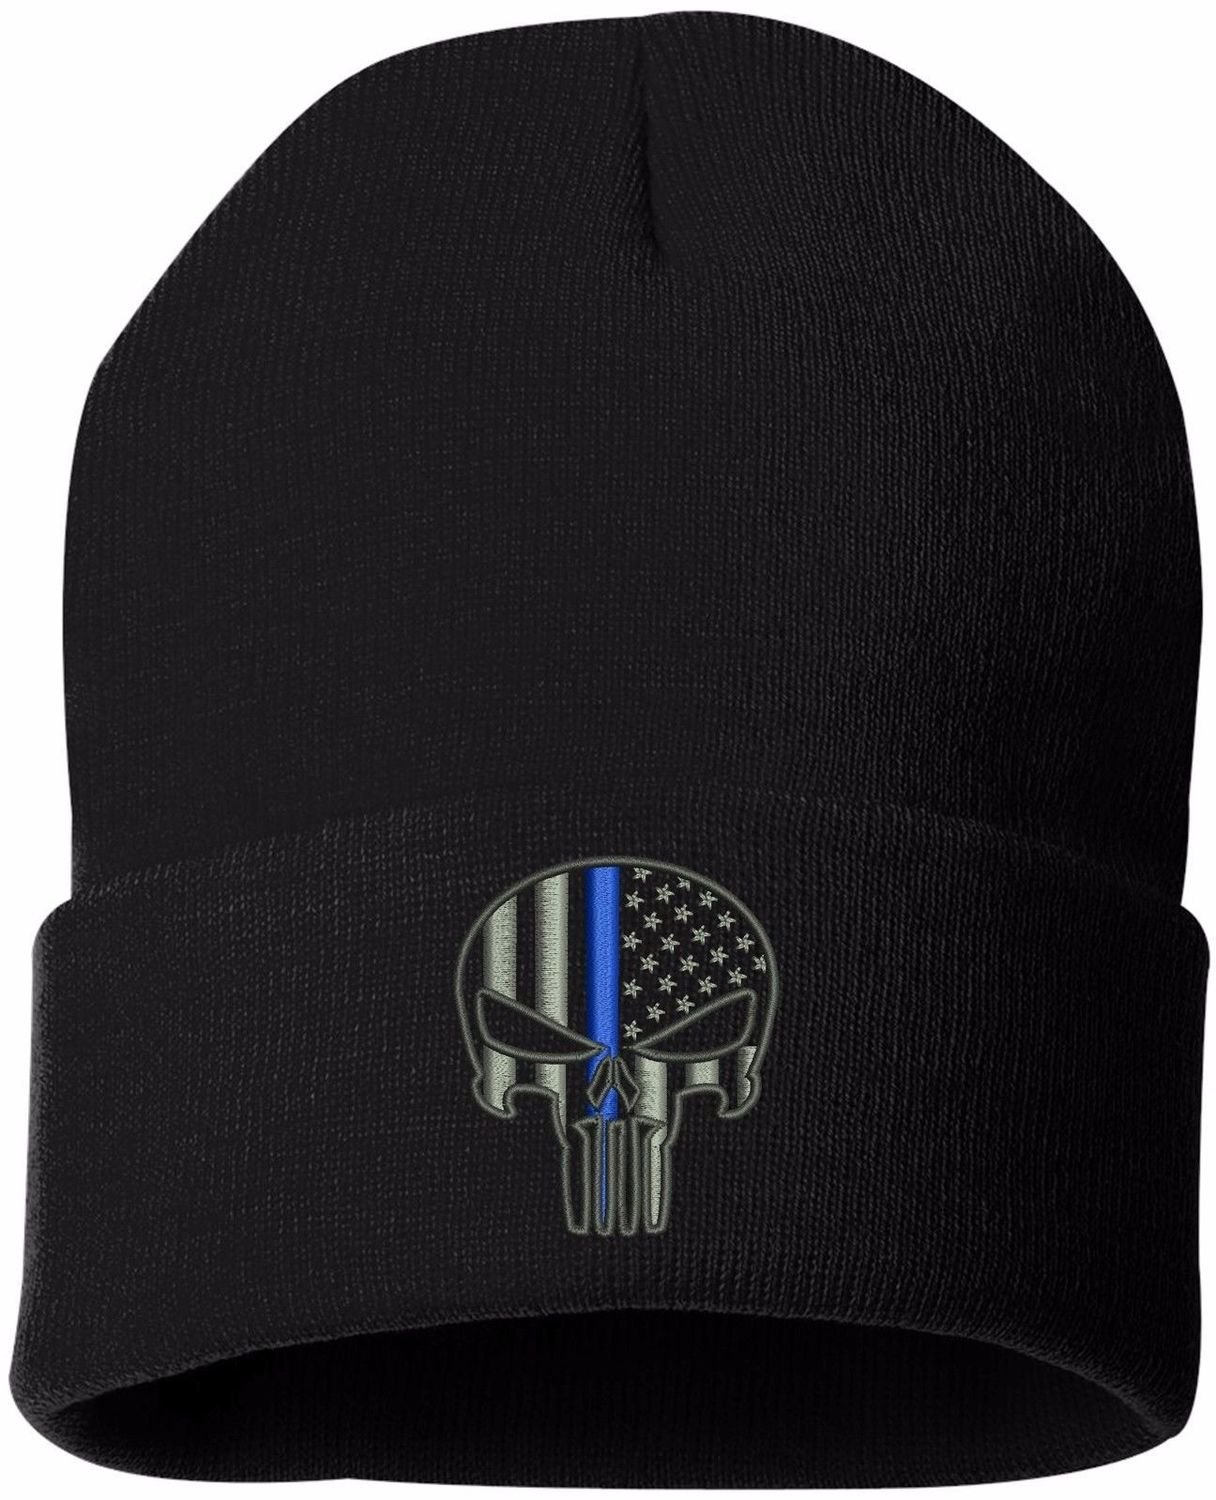 CPD Memorial Foundation Punisher Knit Hat Cuffed